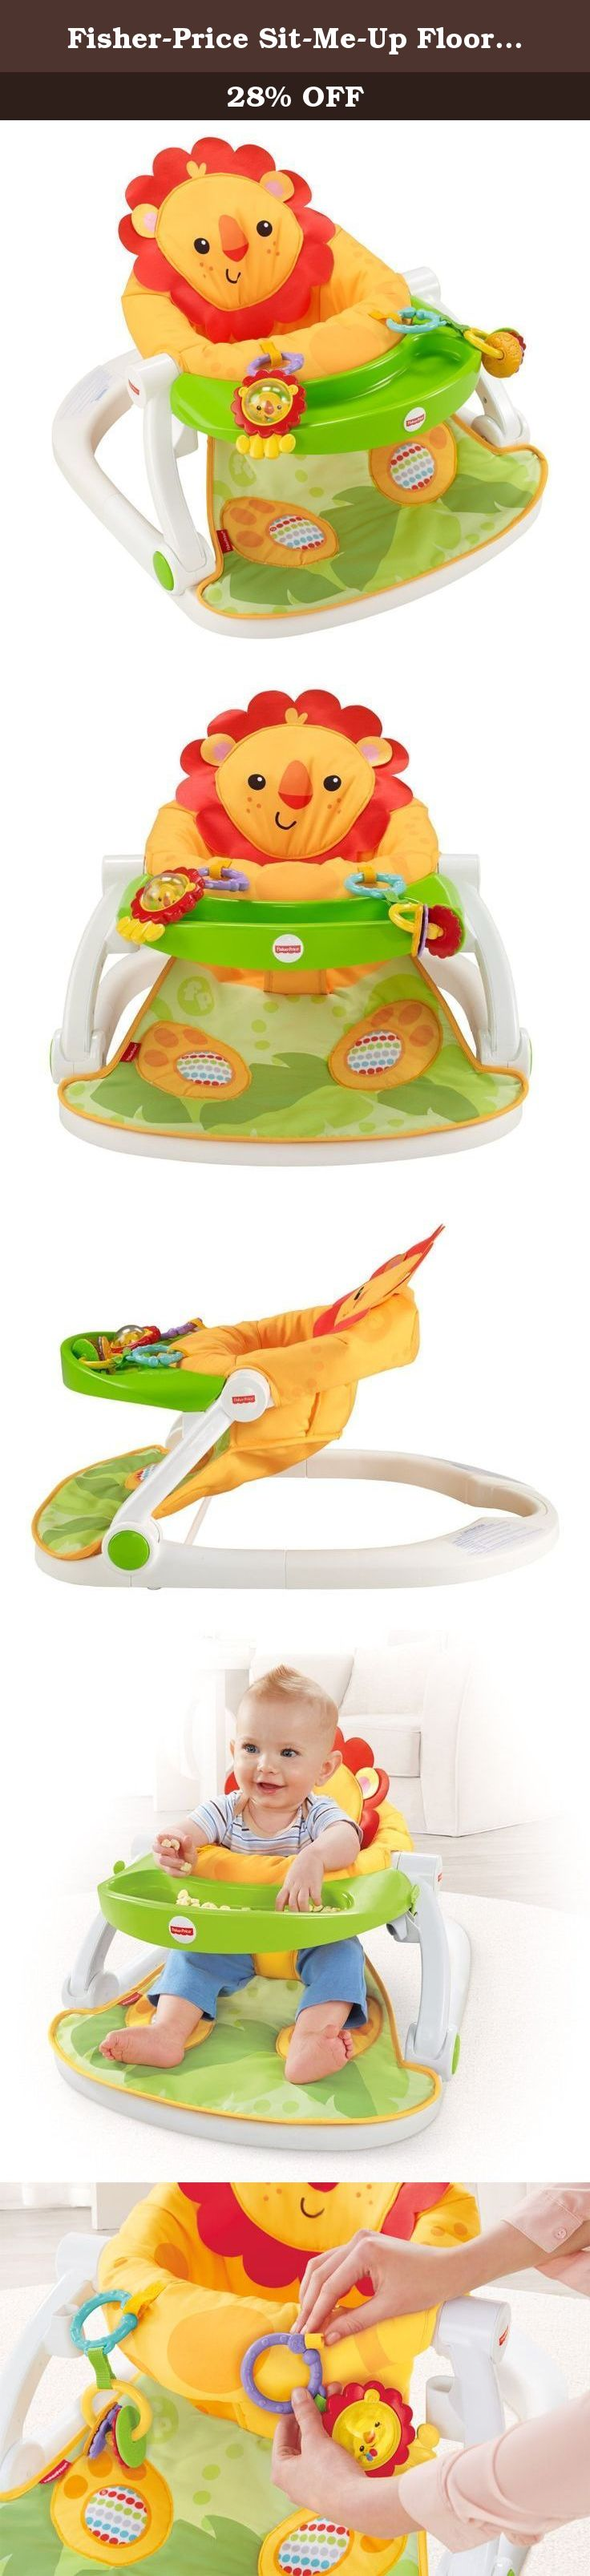 Fisher Price Sit Me Up Floor Seat with Tray fy portable seat